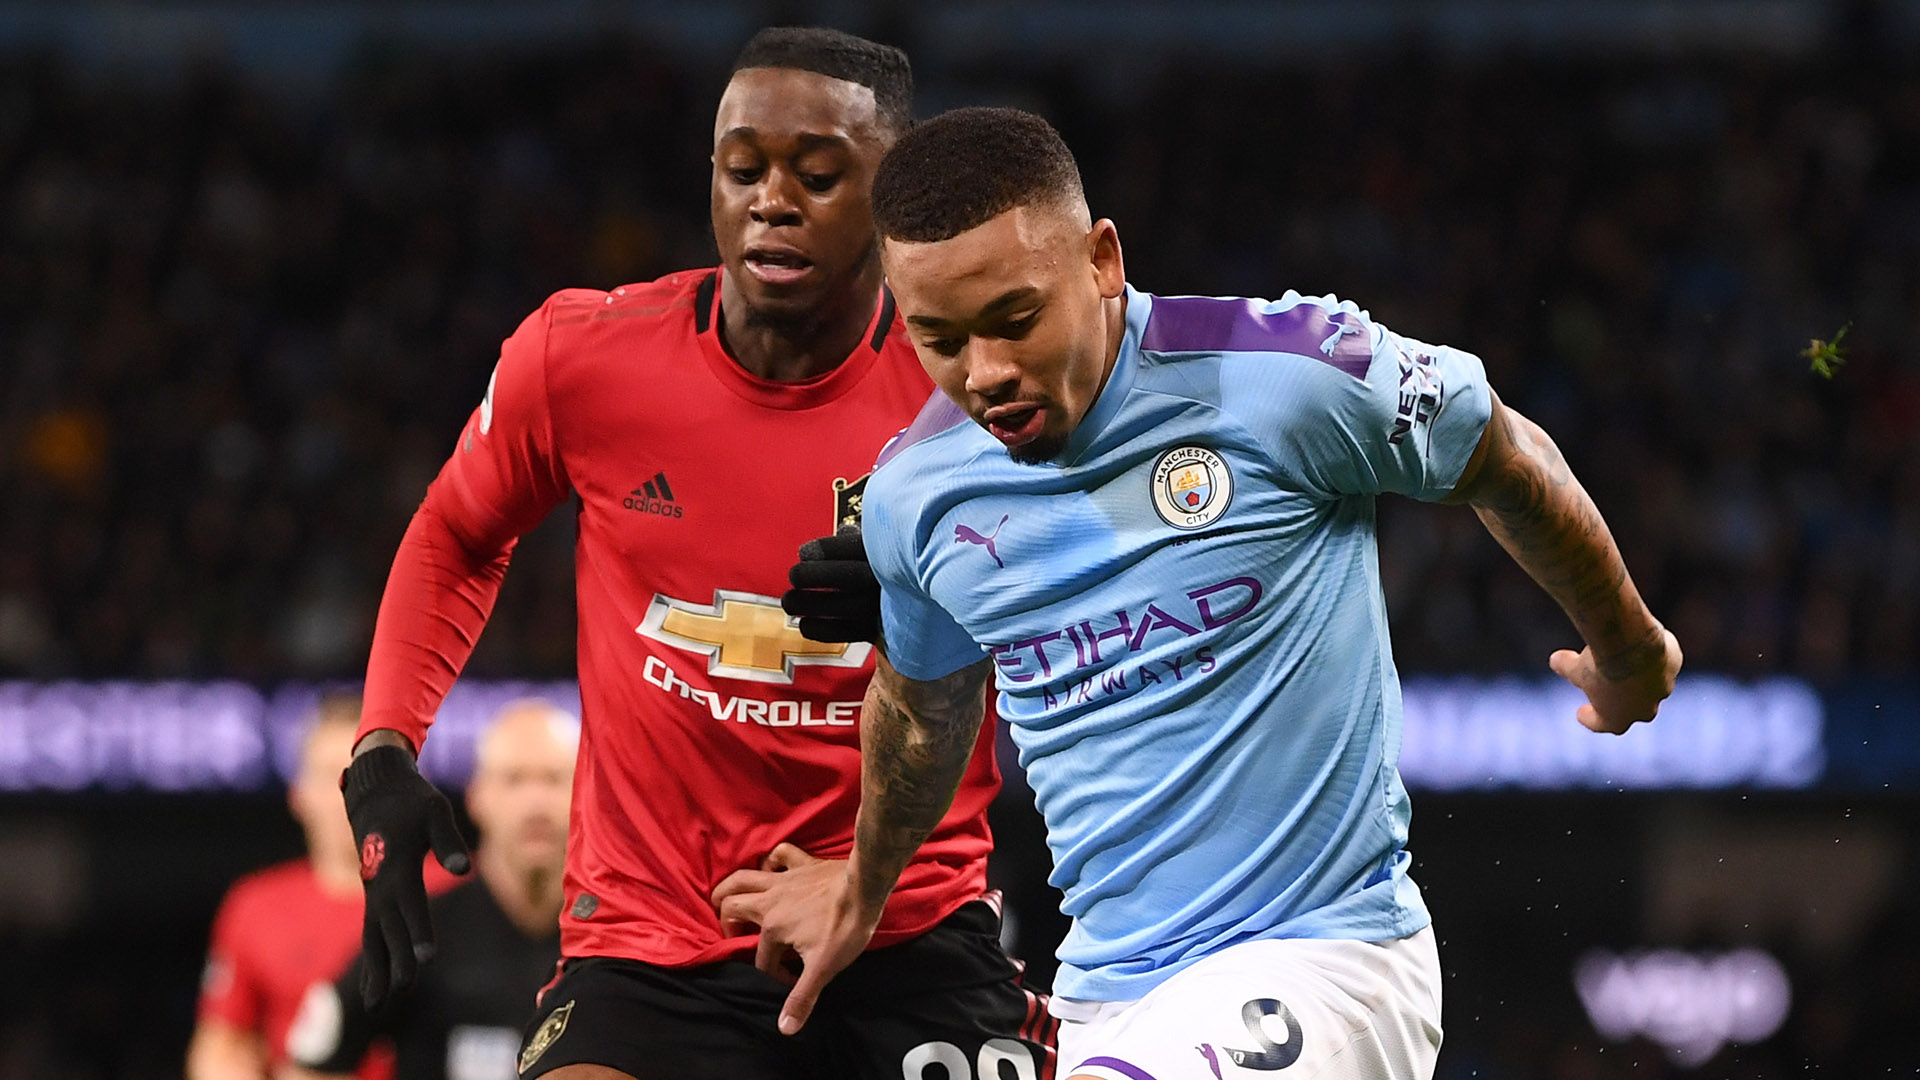 'Manchester United improvement is clear' – Wan-Bissaka sees more to come from him and Red Devils